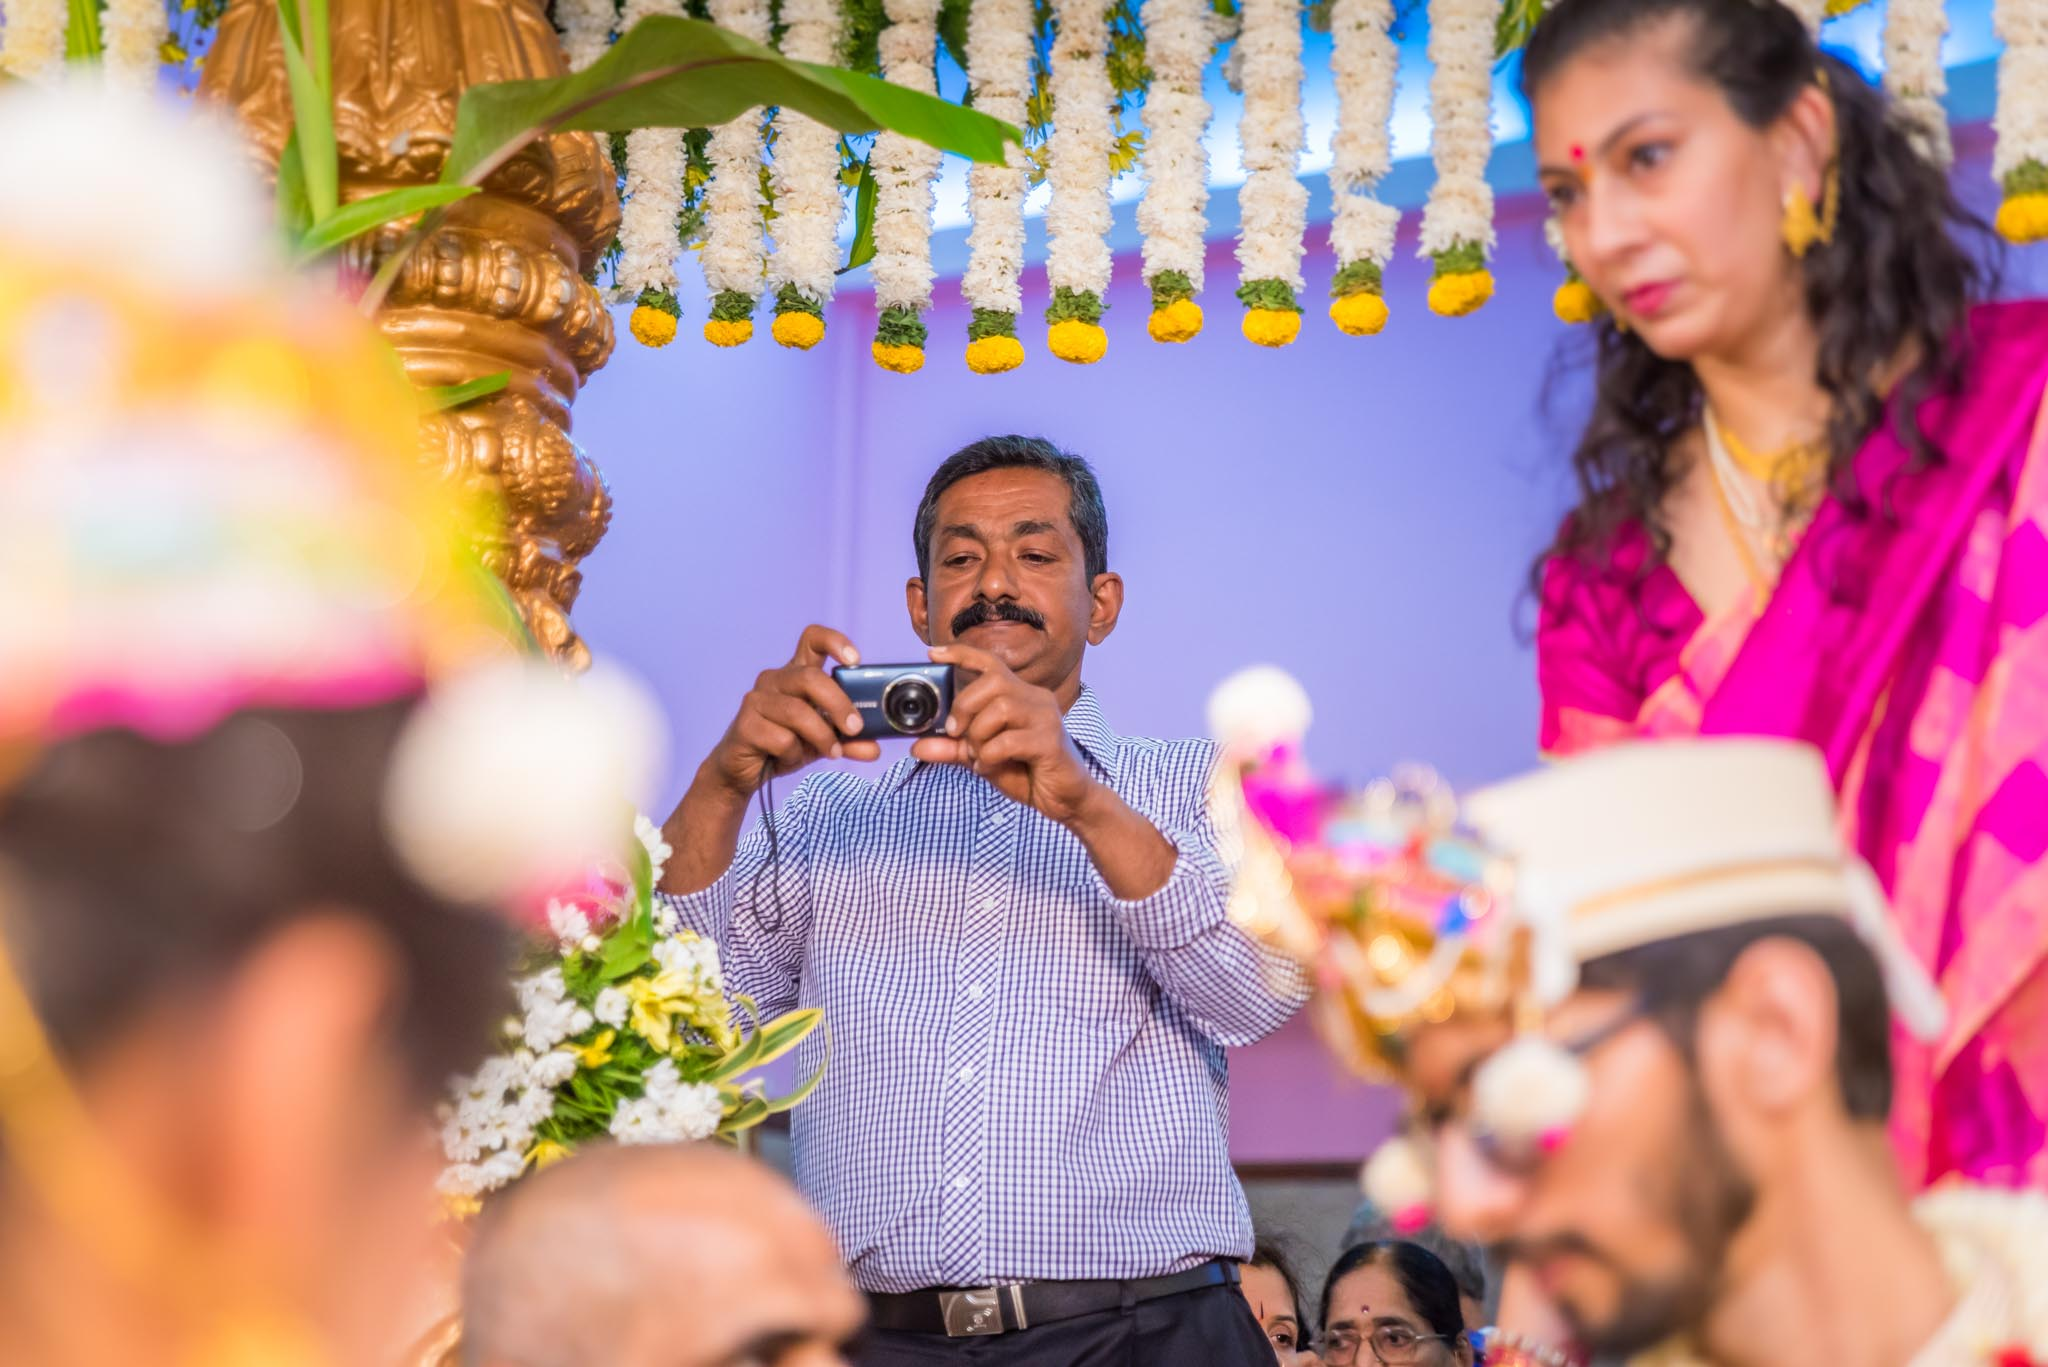 WhatKnot-Candid-Wedding-Photography-Mumbai-Bangalore-179